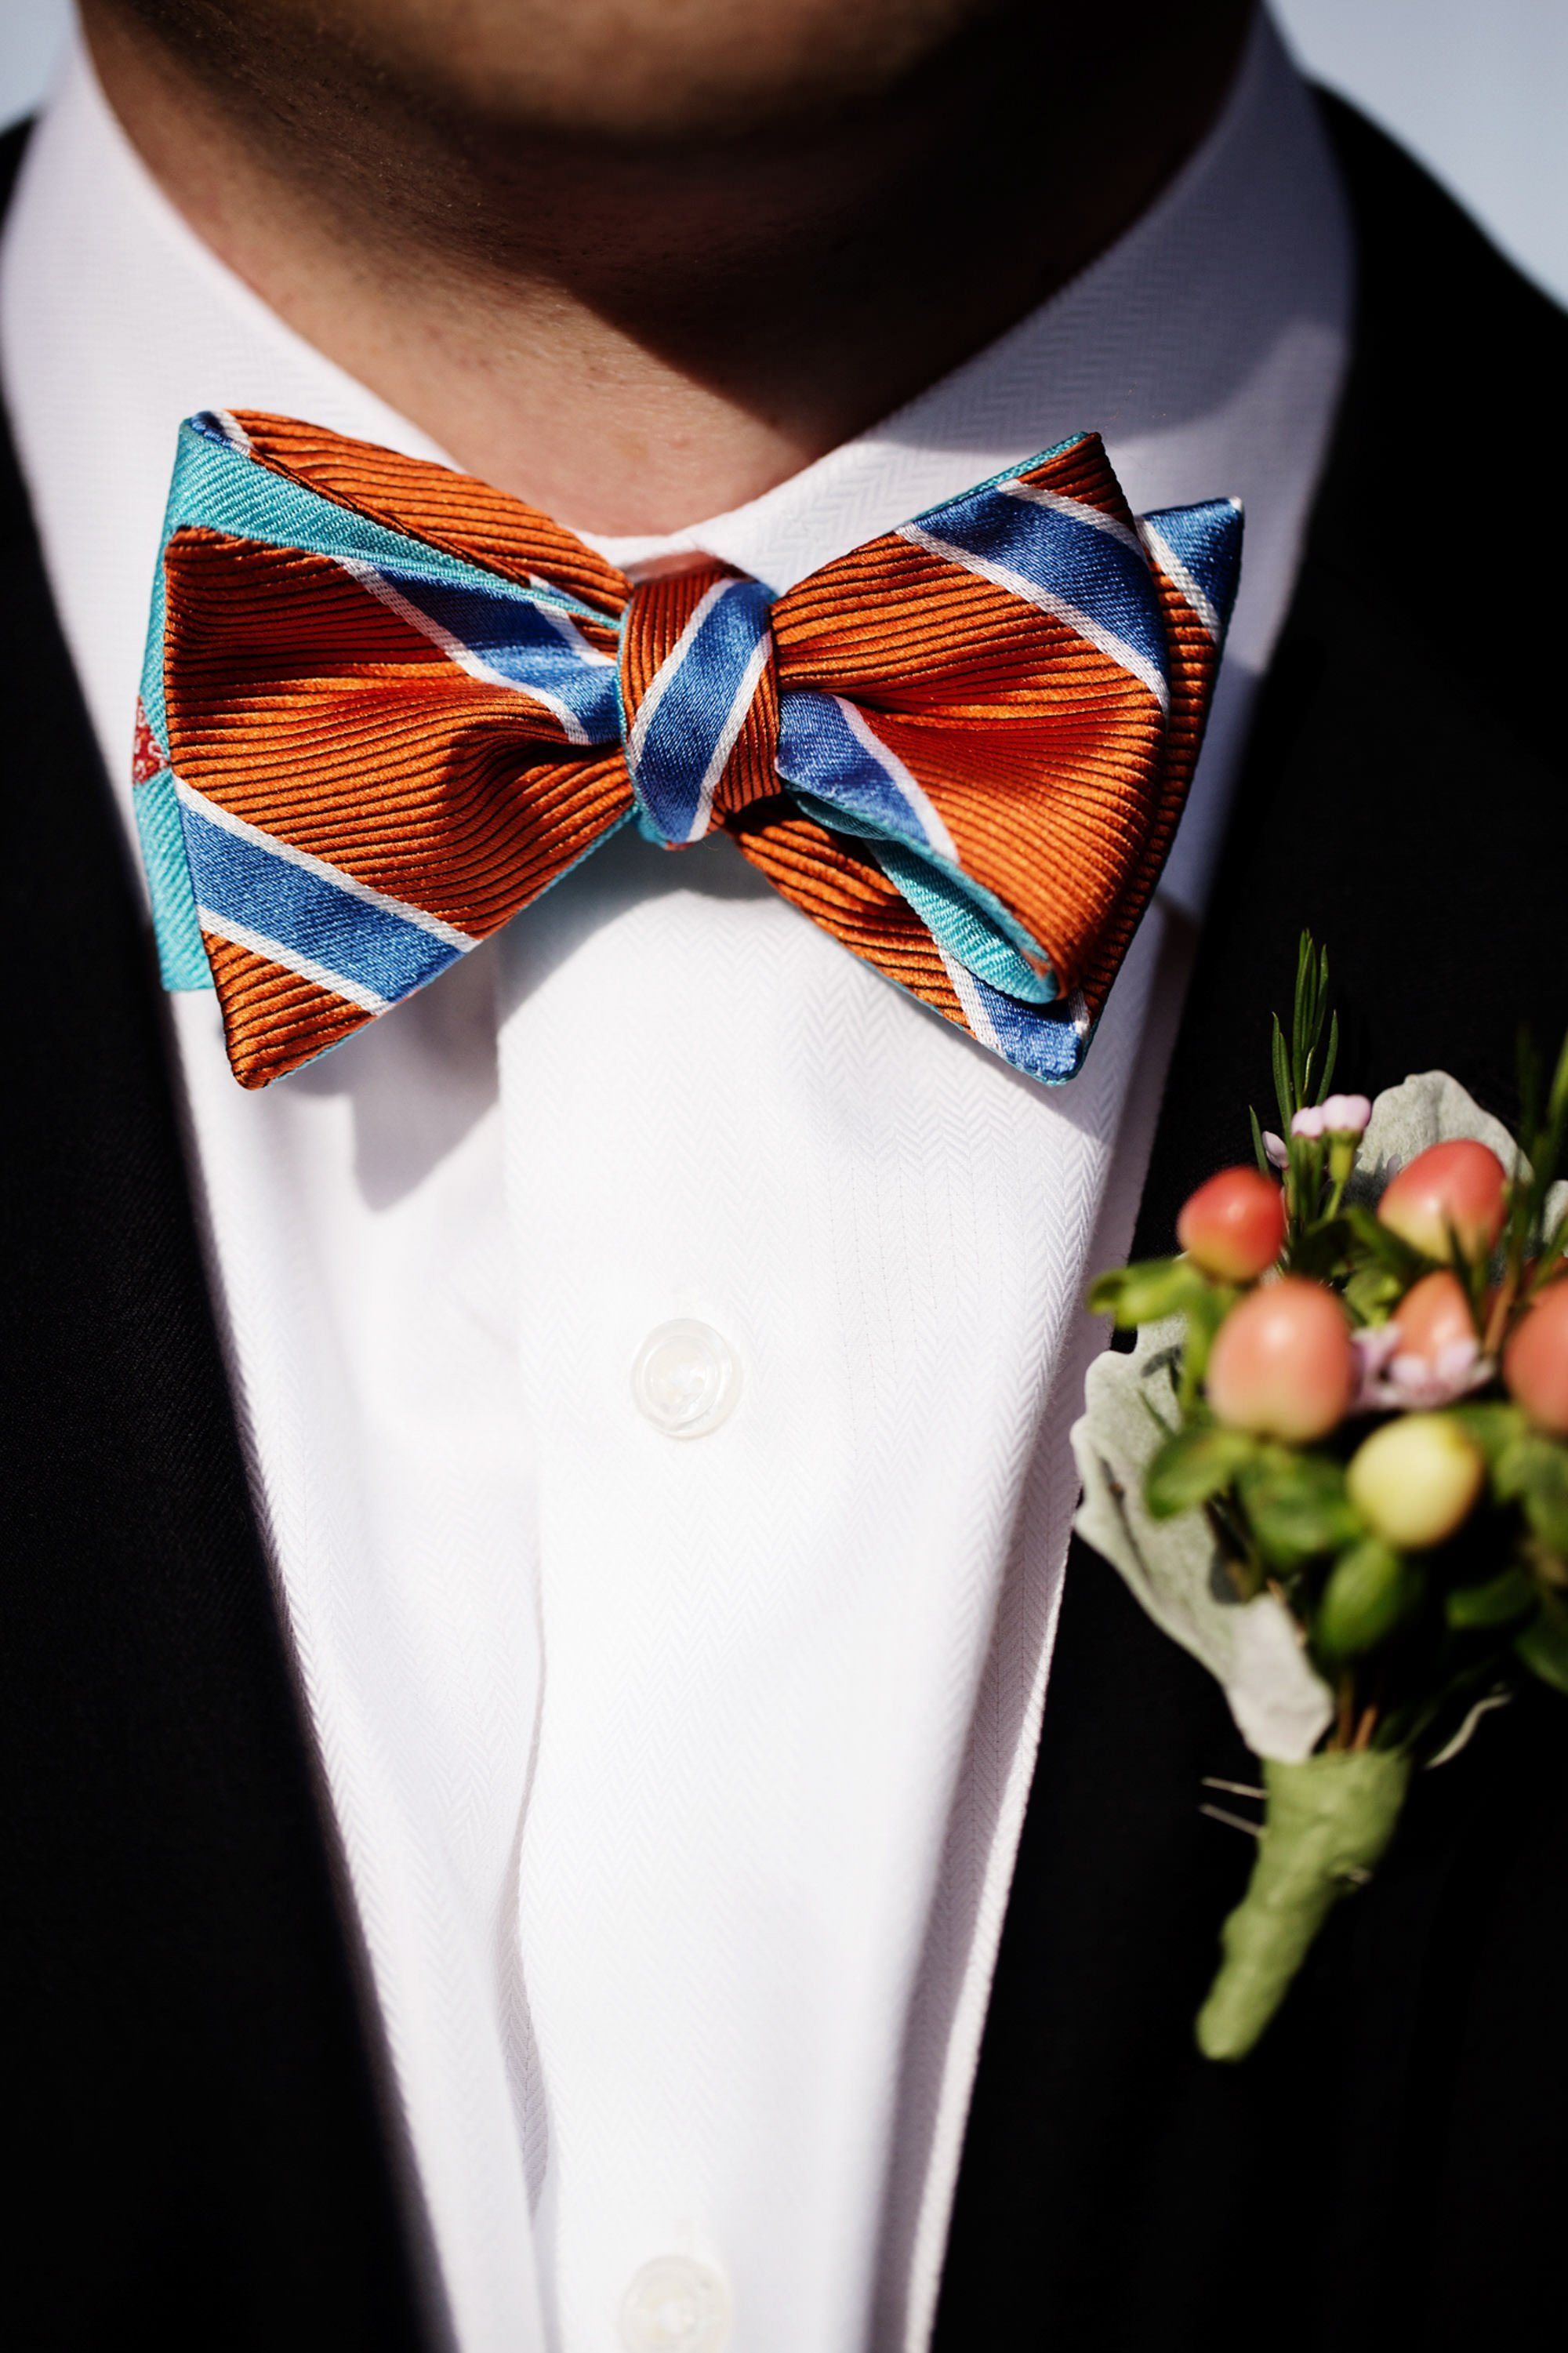 A detail of a groomsman's bowtie.